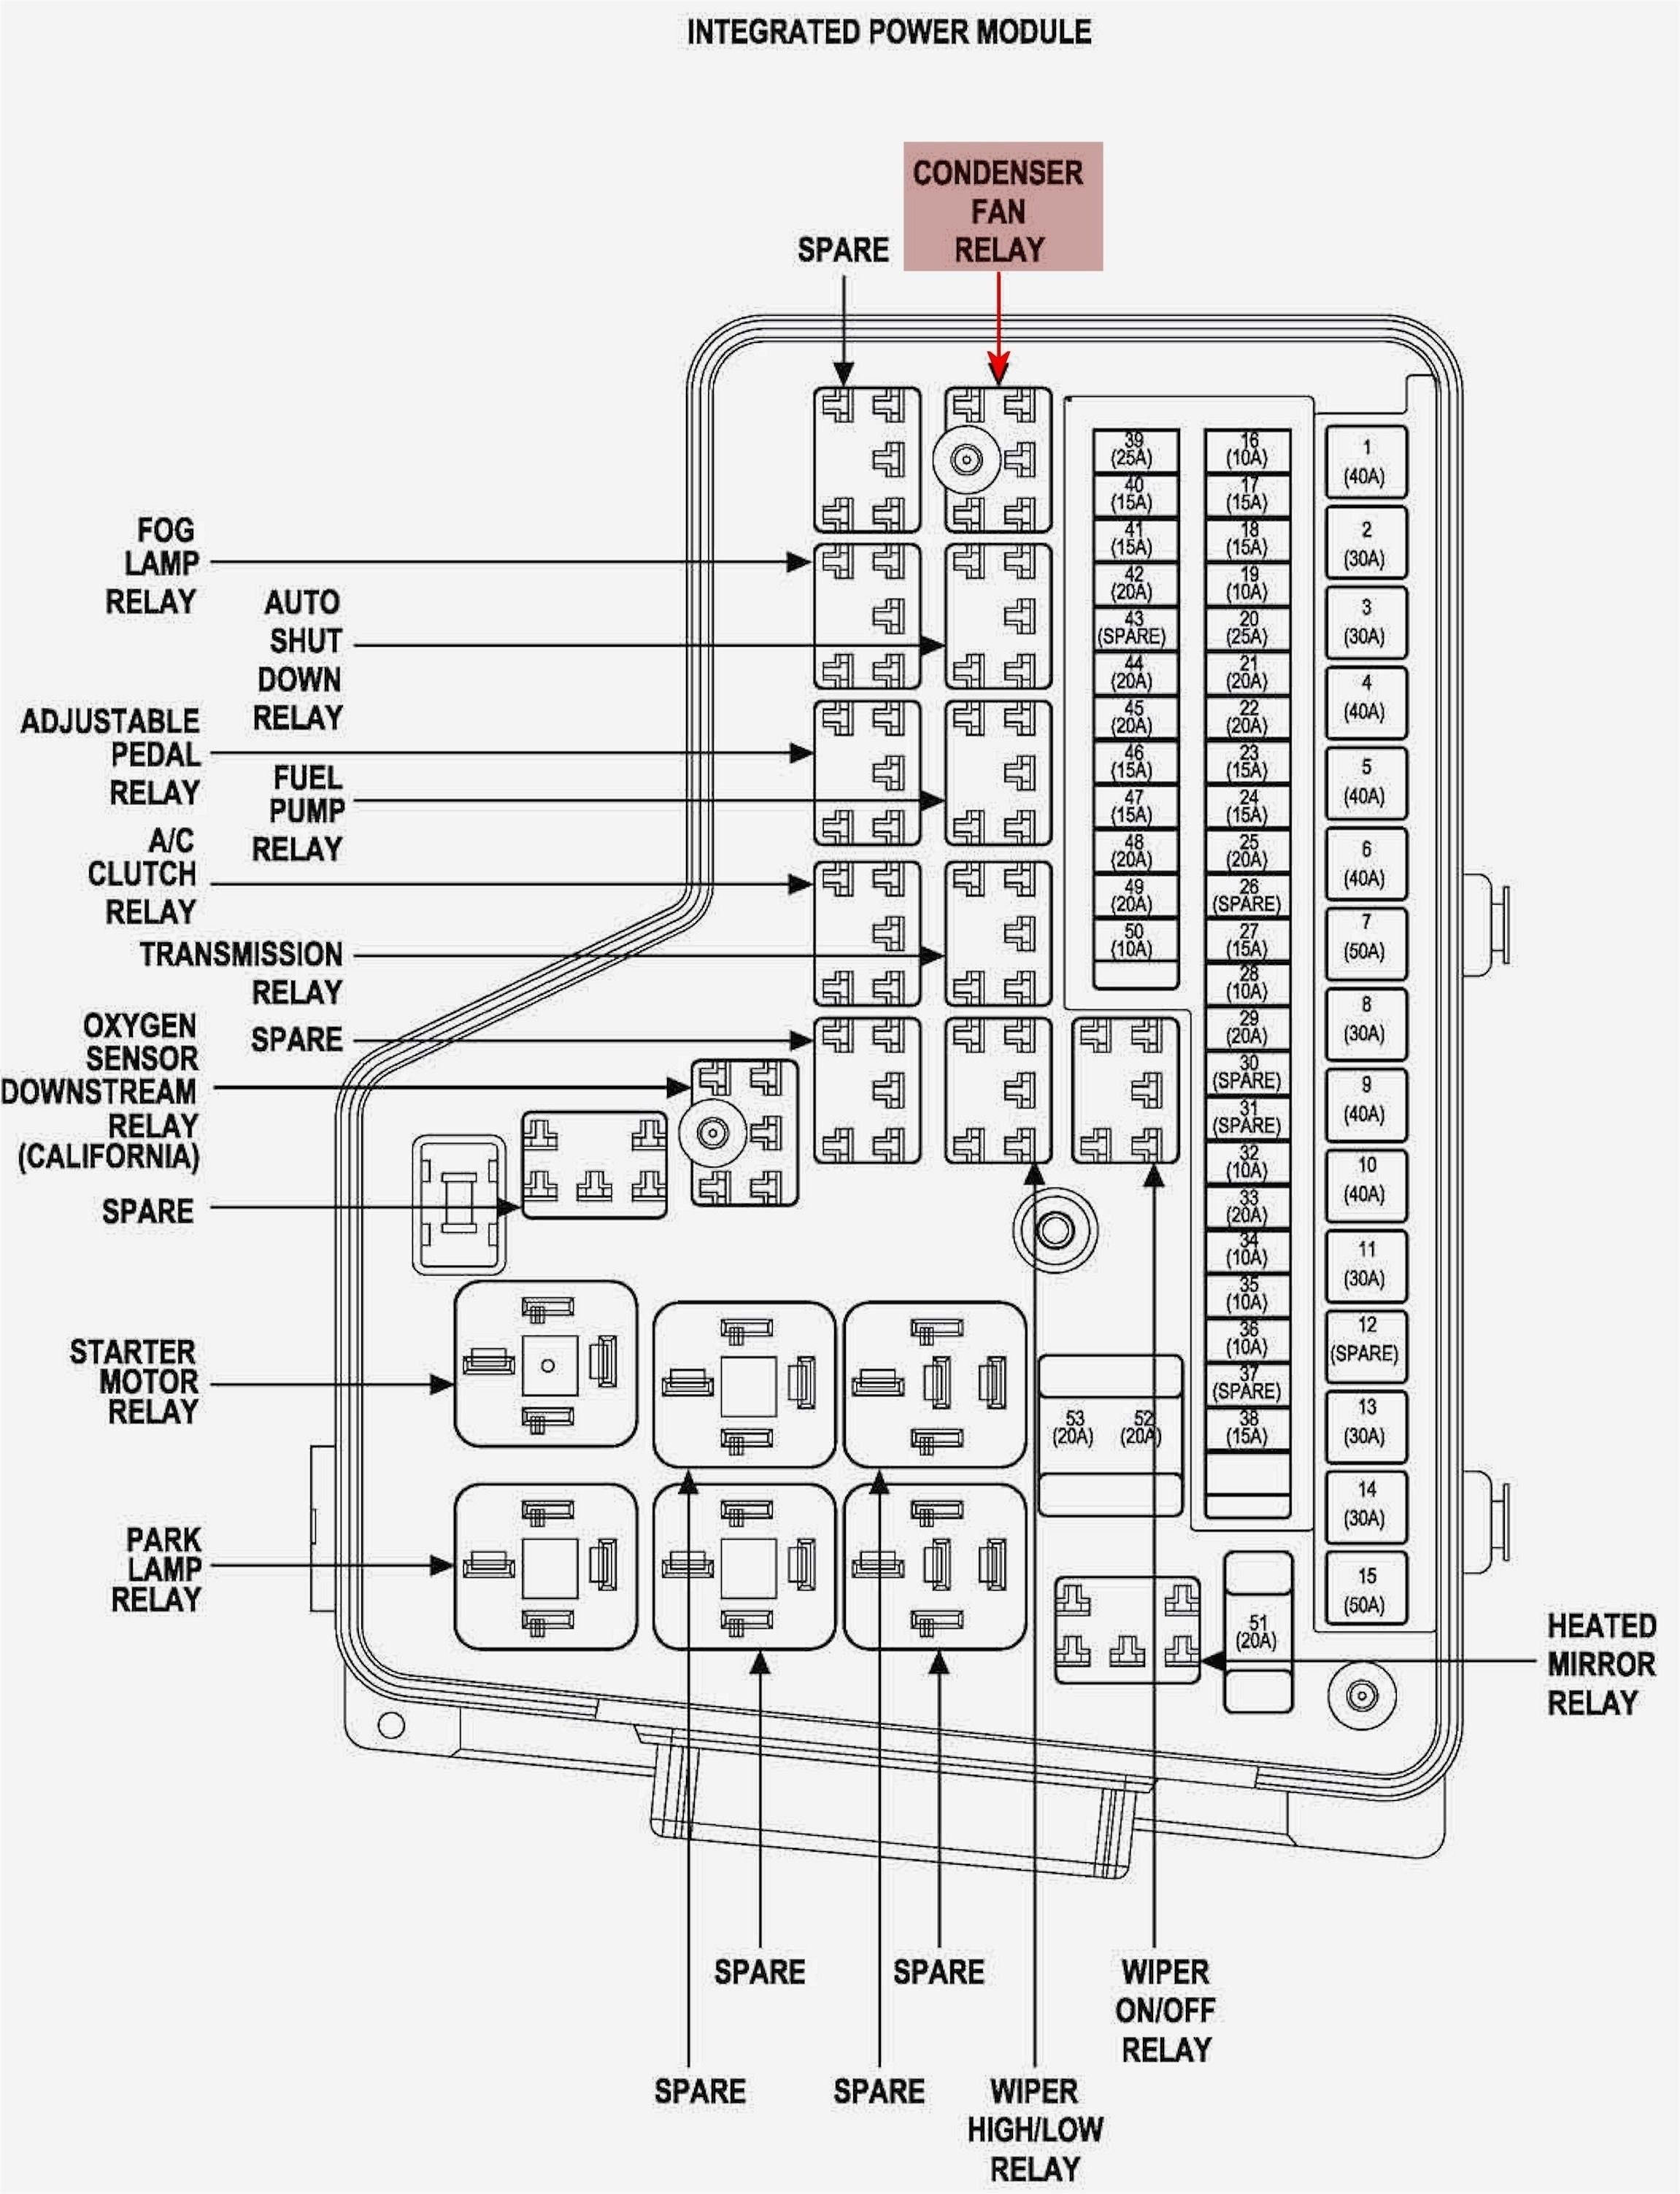 Unique Wiring Diagram 2005 Dodge Ram 1500 Diagram Diagramsample Diagramtemplate Wiringdiagram Diagramchart Worksheet W Dodge Ram 1500 Dodge Ram Ram 1500